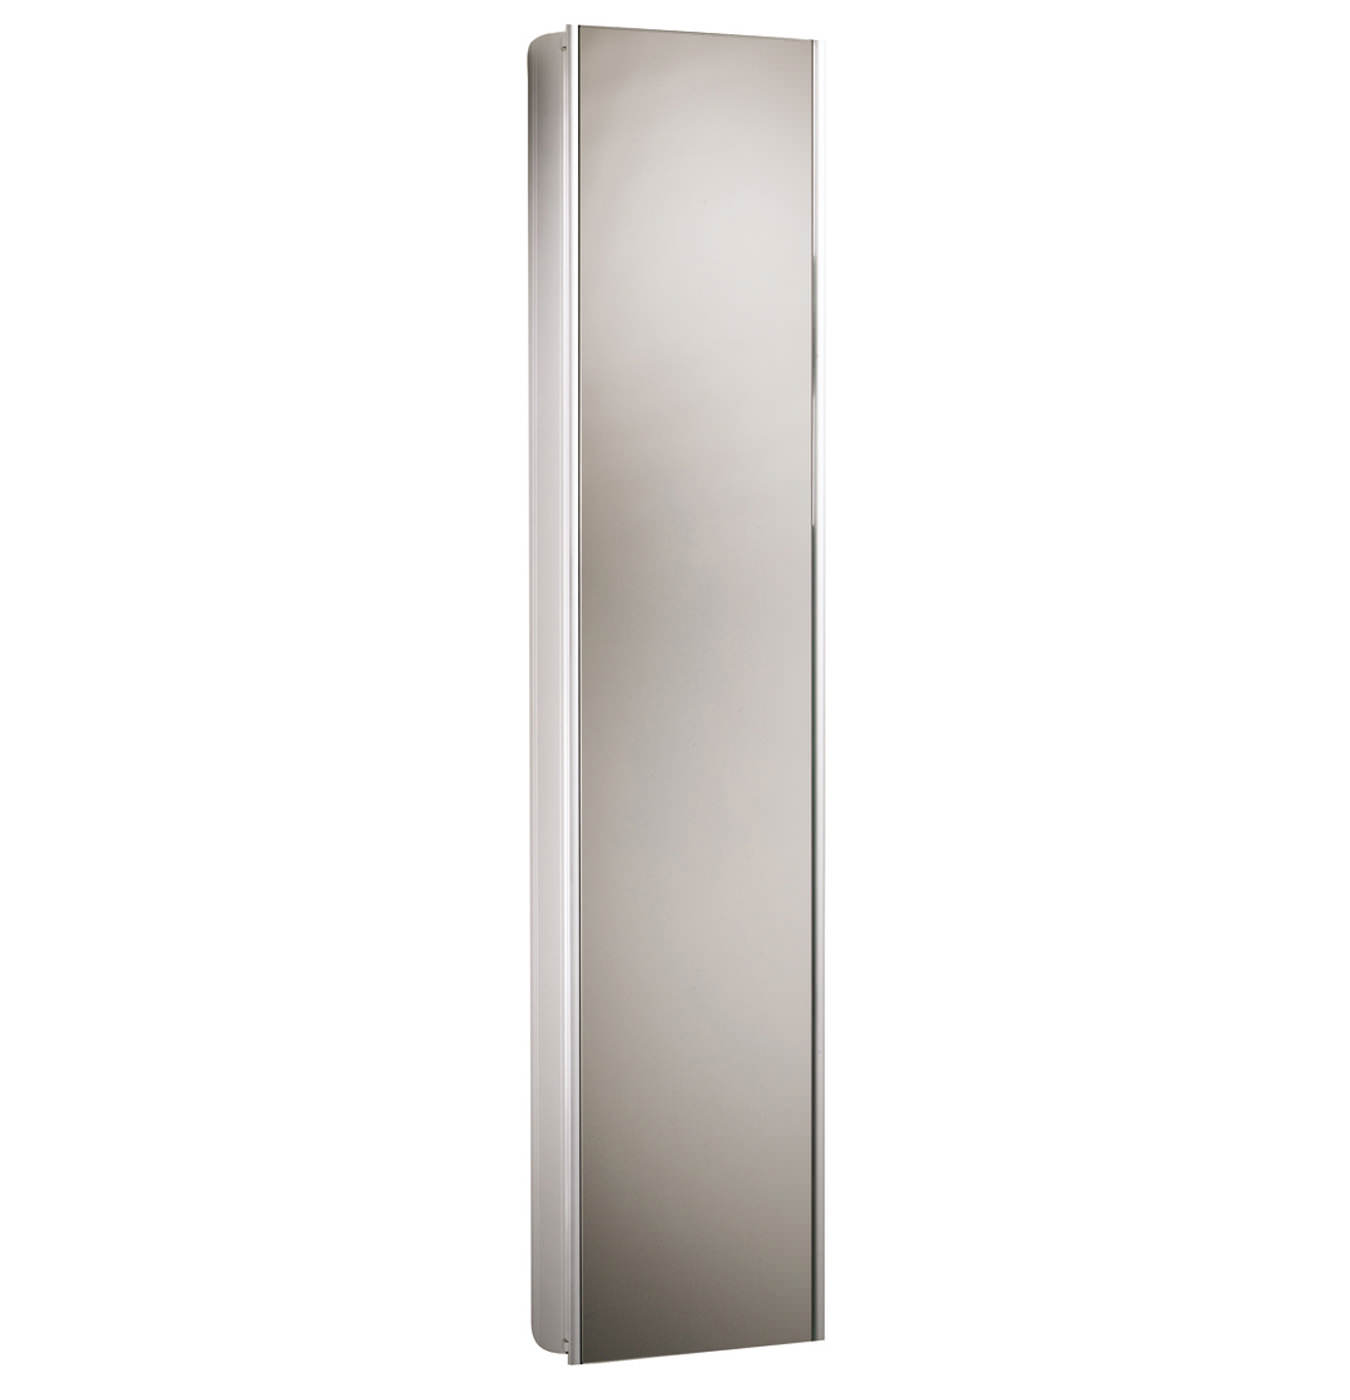 tall mirror bathroom cabinet ascension reference mirror door wall cabinet 315mm 20763